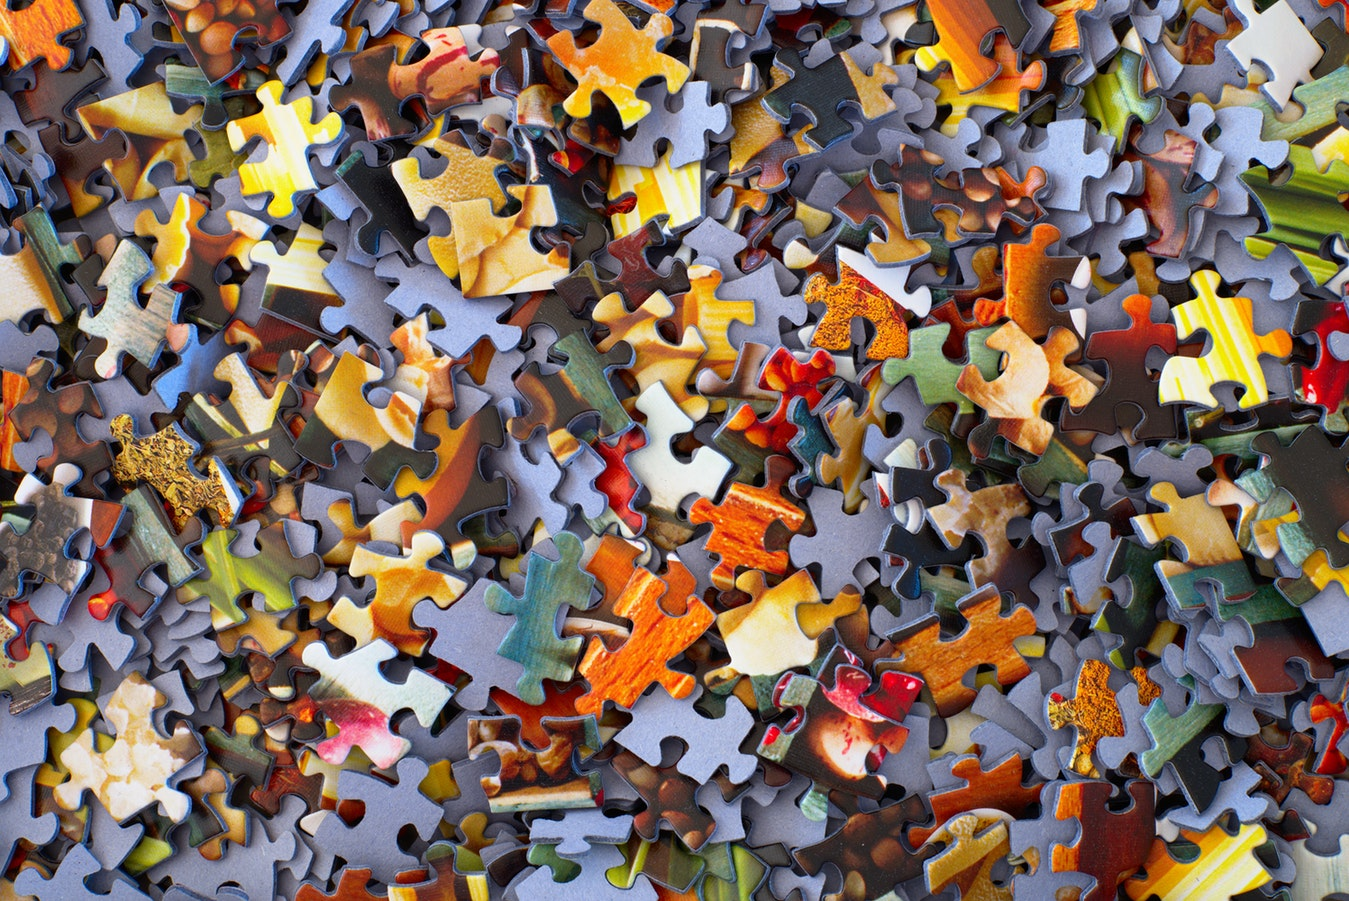 Disarranged puzzle pieces